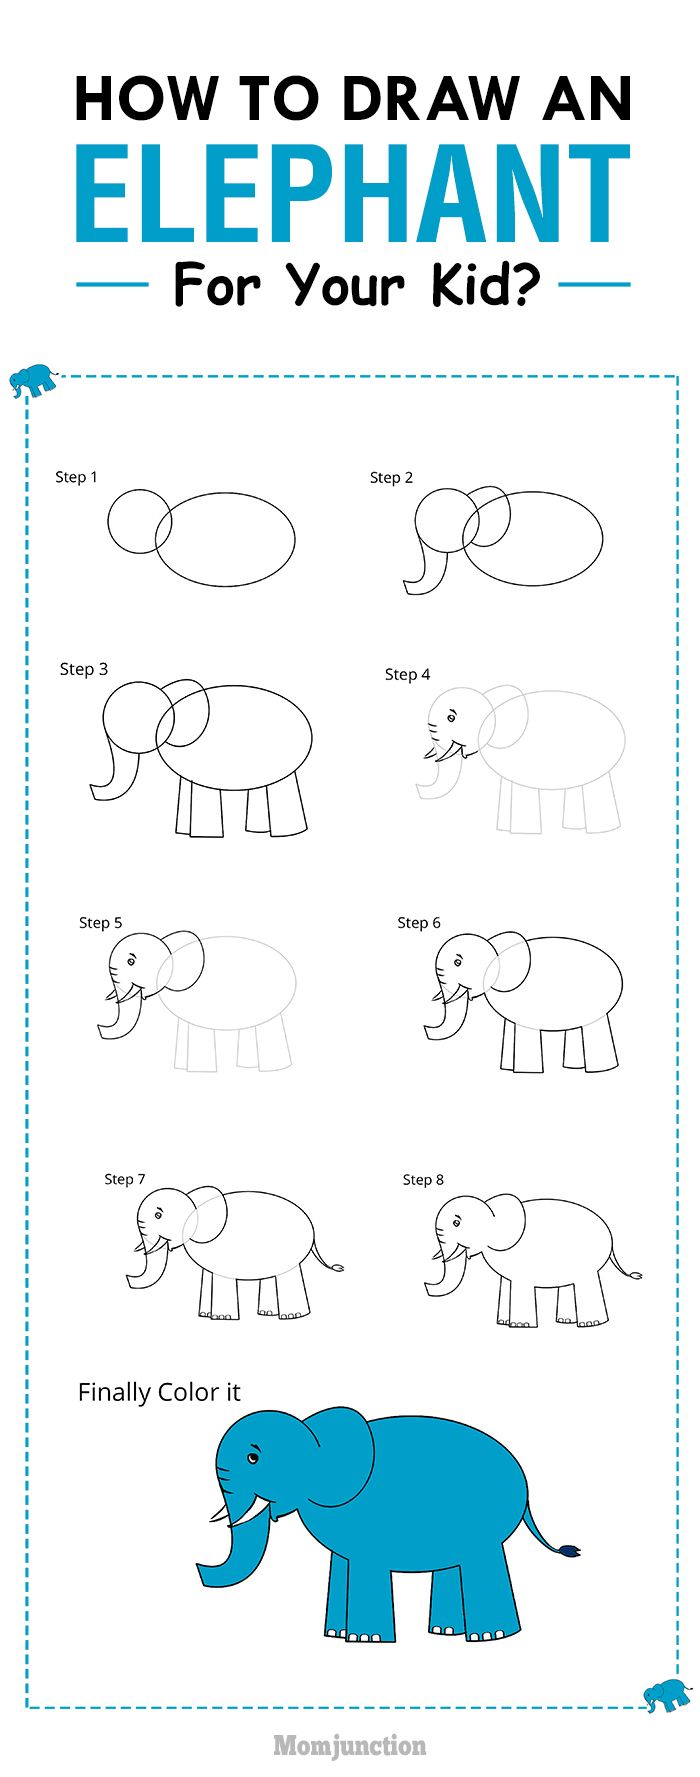 How To Draw An Elephant For Kids In Easy Steps? | Kids | Pinterest ...